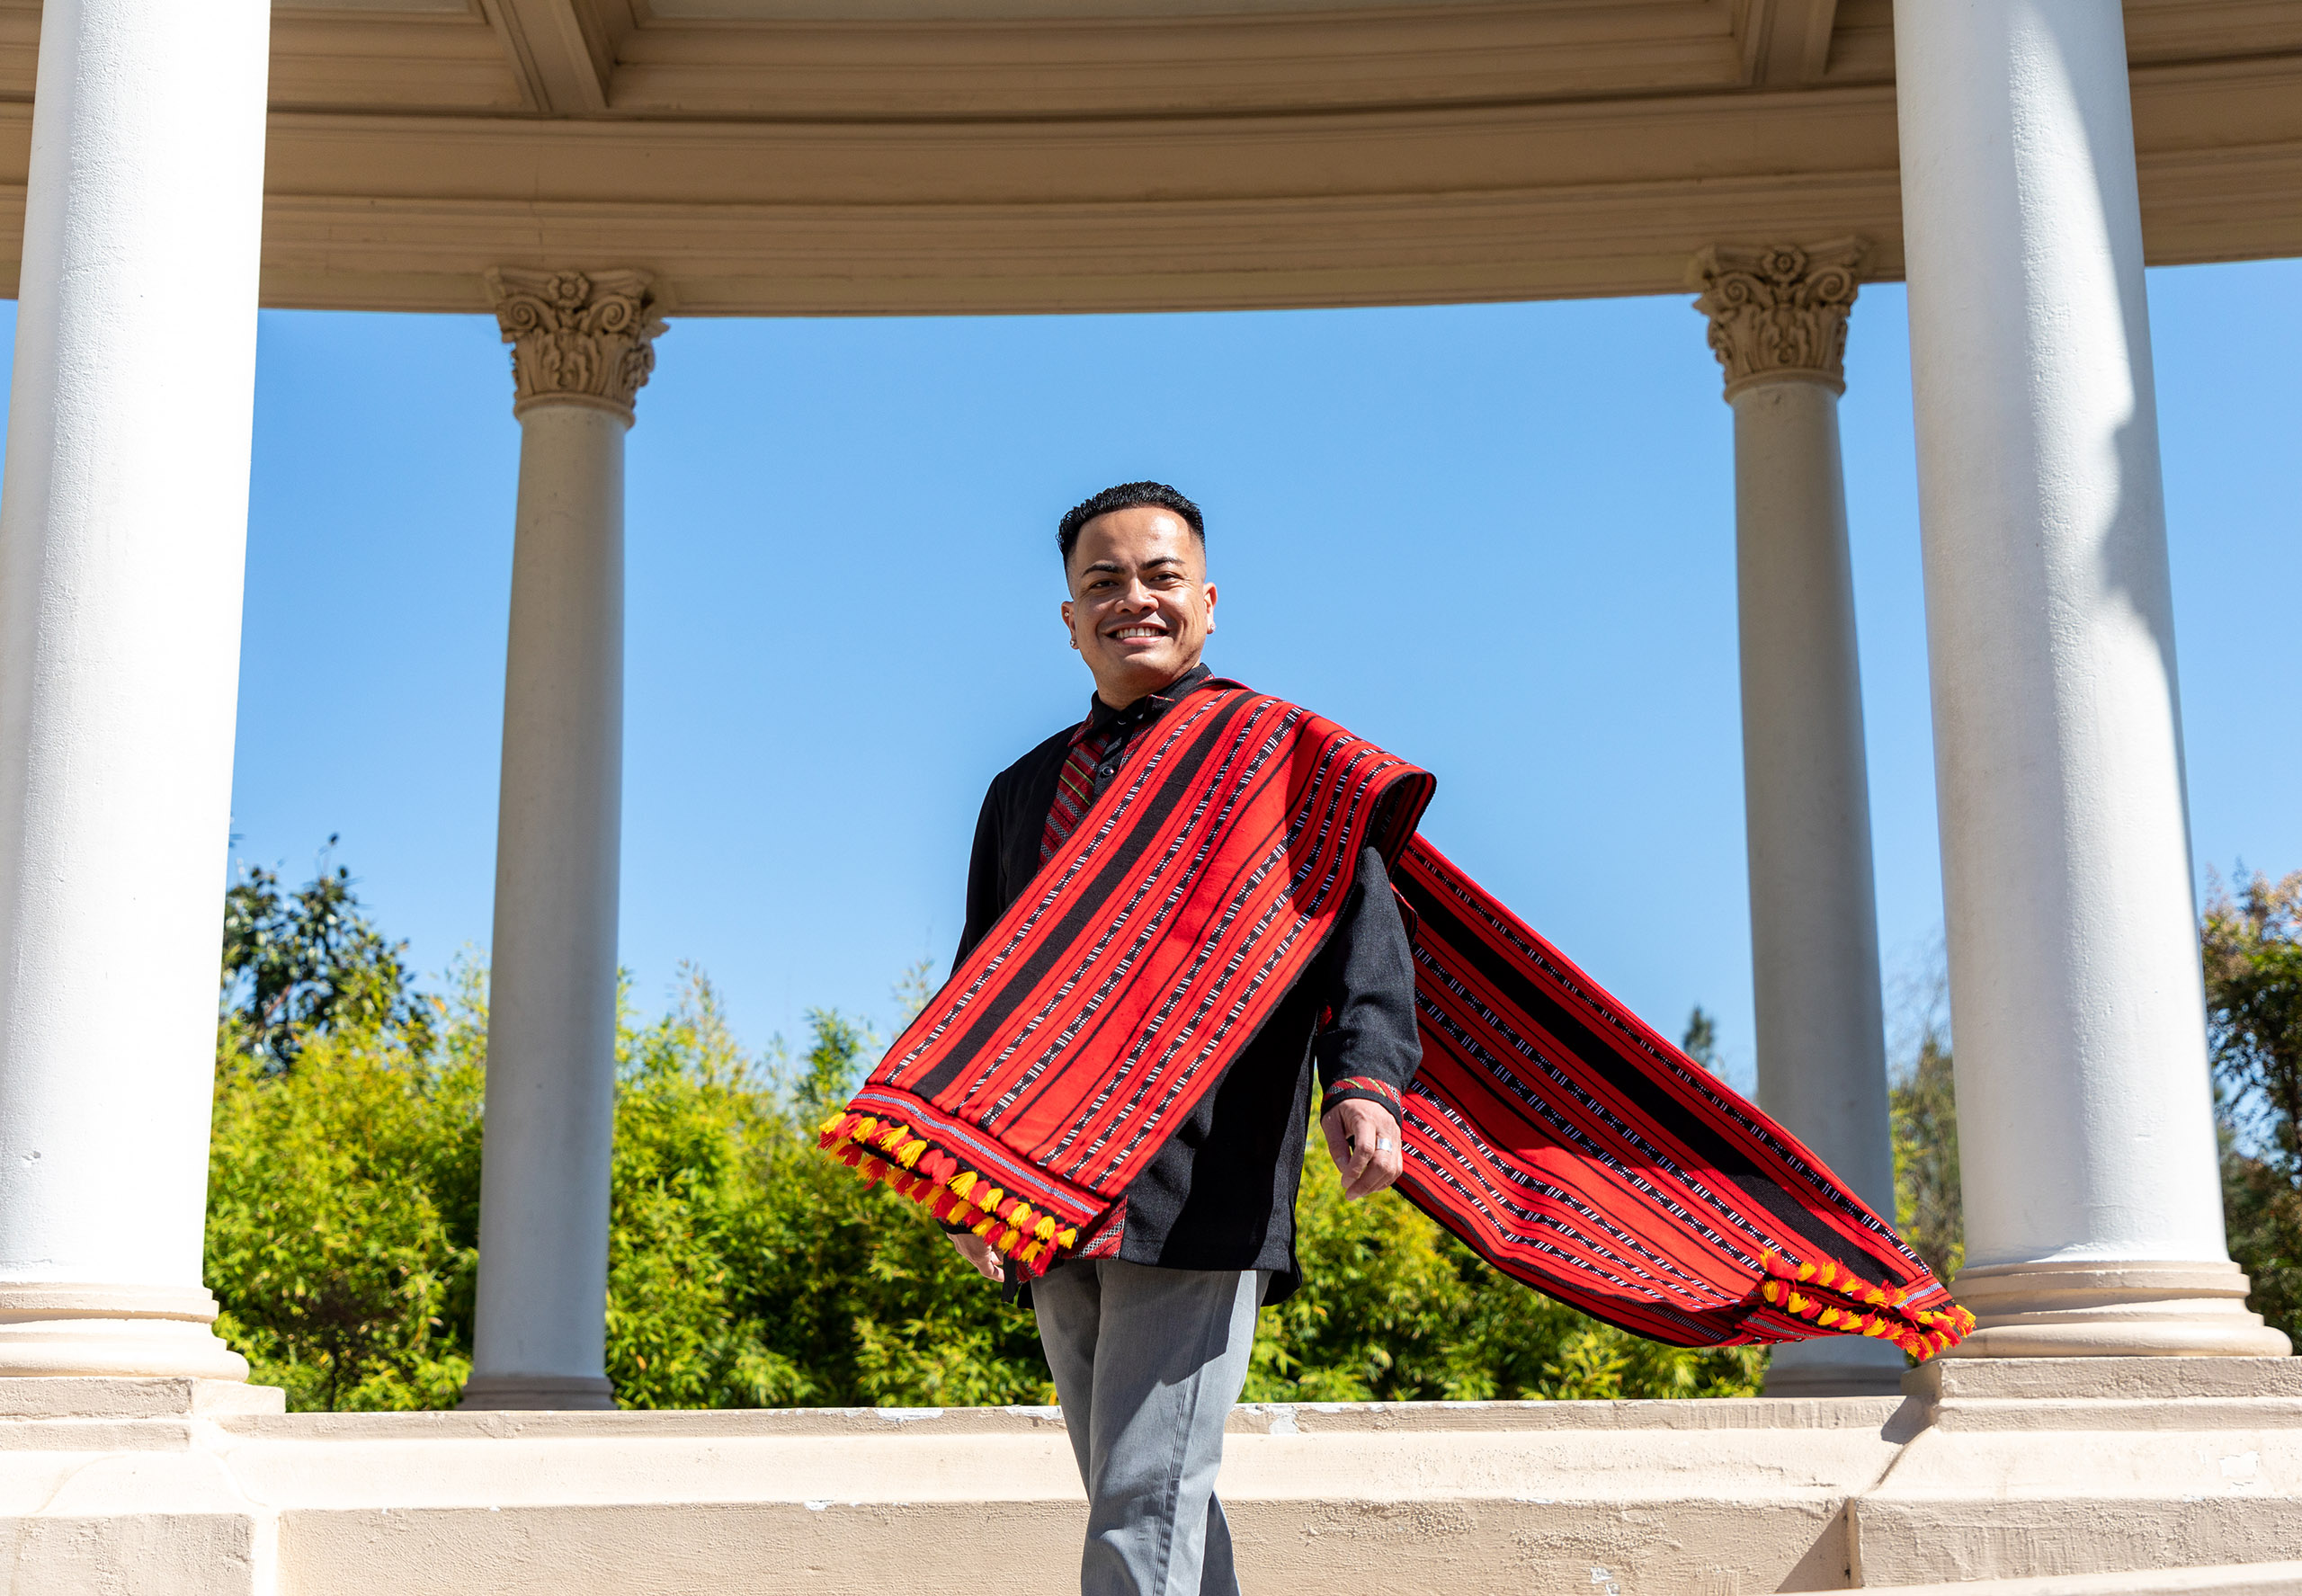 A Philippino-American man with a long, red woven scarf stands among several stone columns under a blue sky.